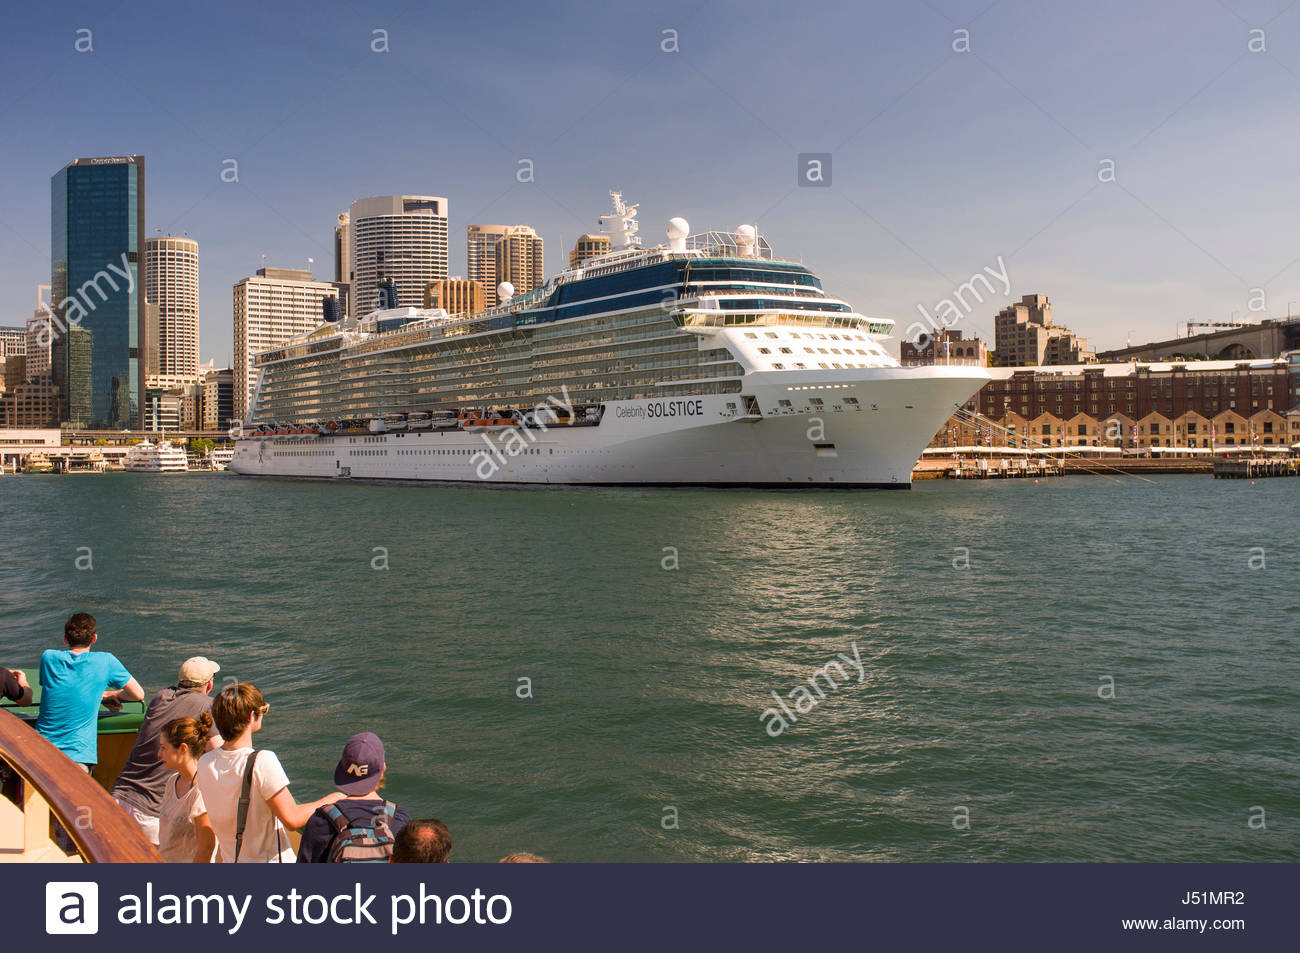 Celebrity Solstice cruise ship docked at the Overseas Passenger Terminal, Circular Quay, Sydney, New South Wales, - Stock Image